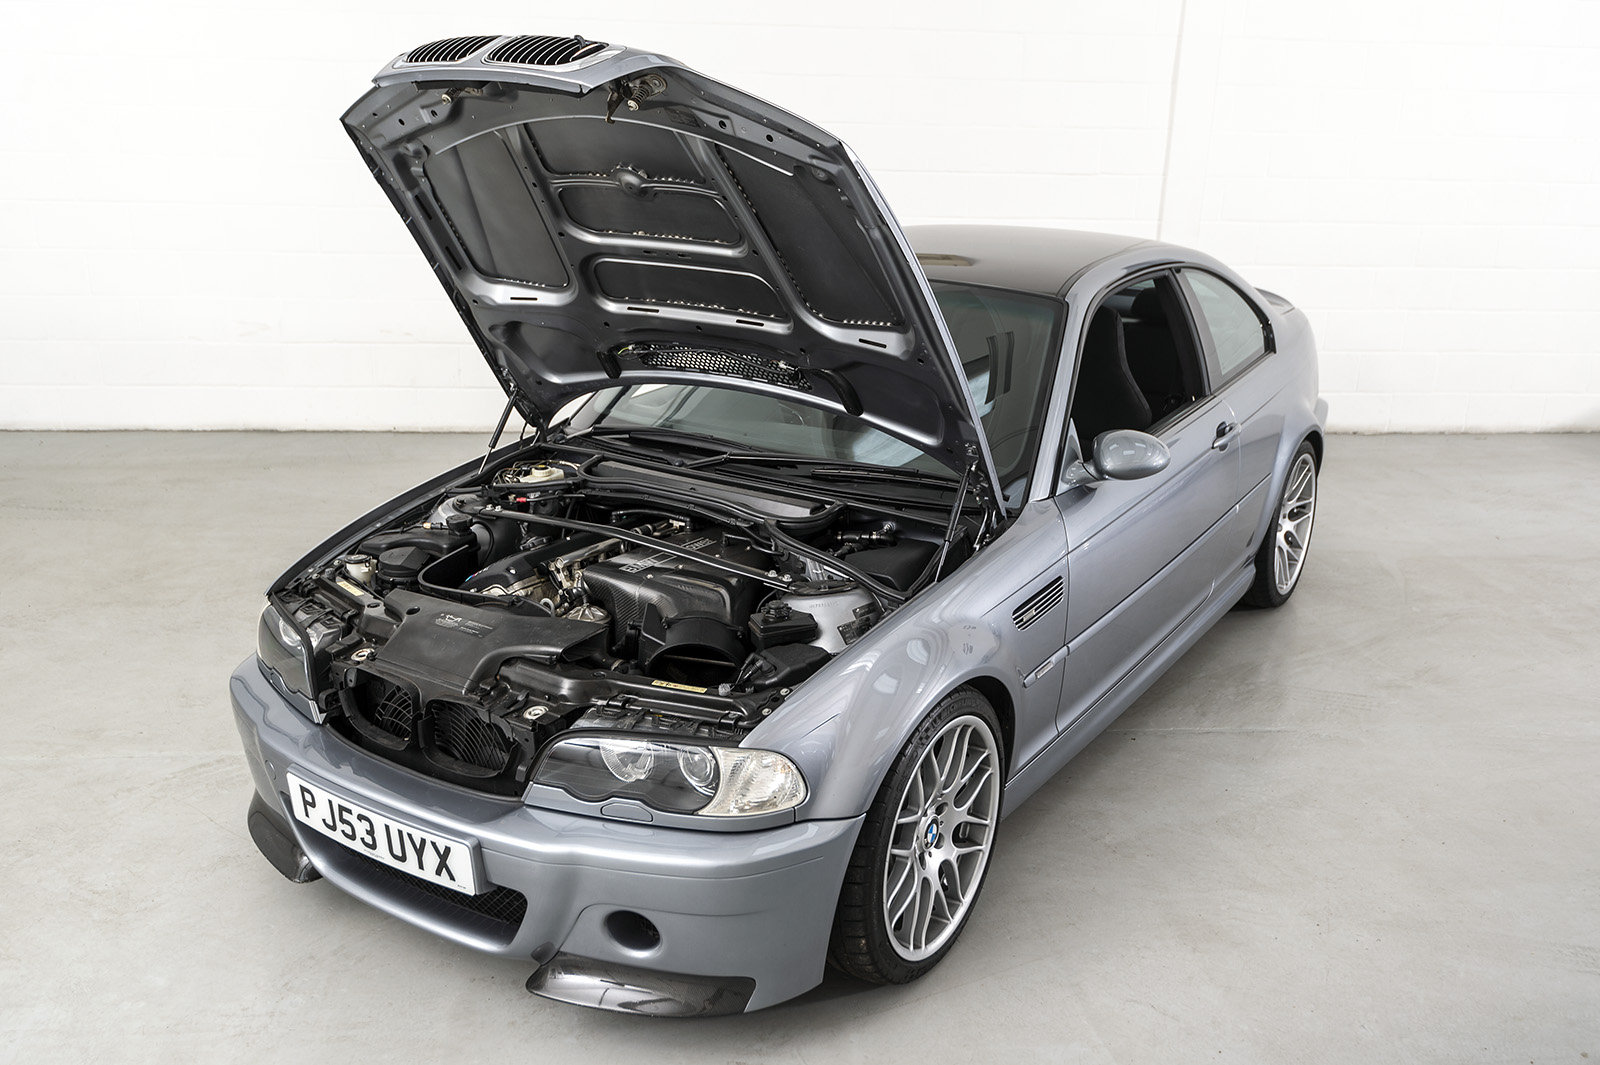 2003 BMW M3 E46 CSL For Sale (picture 2 of 6)